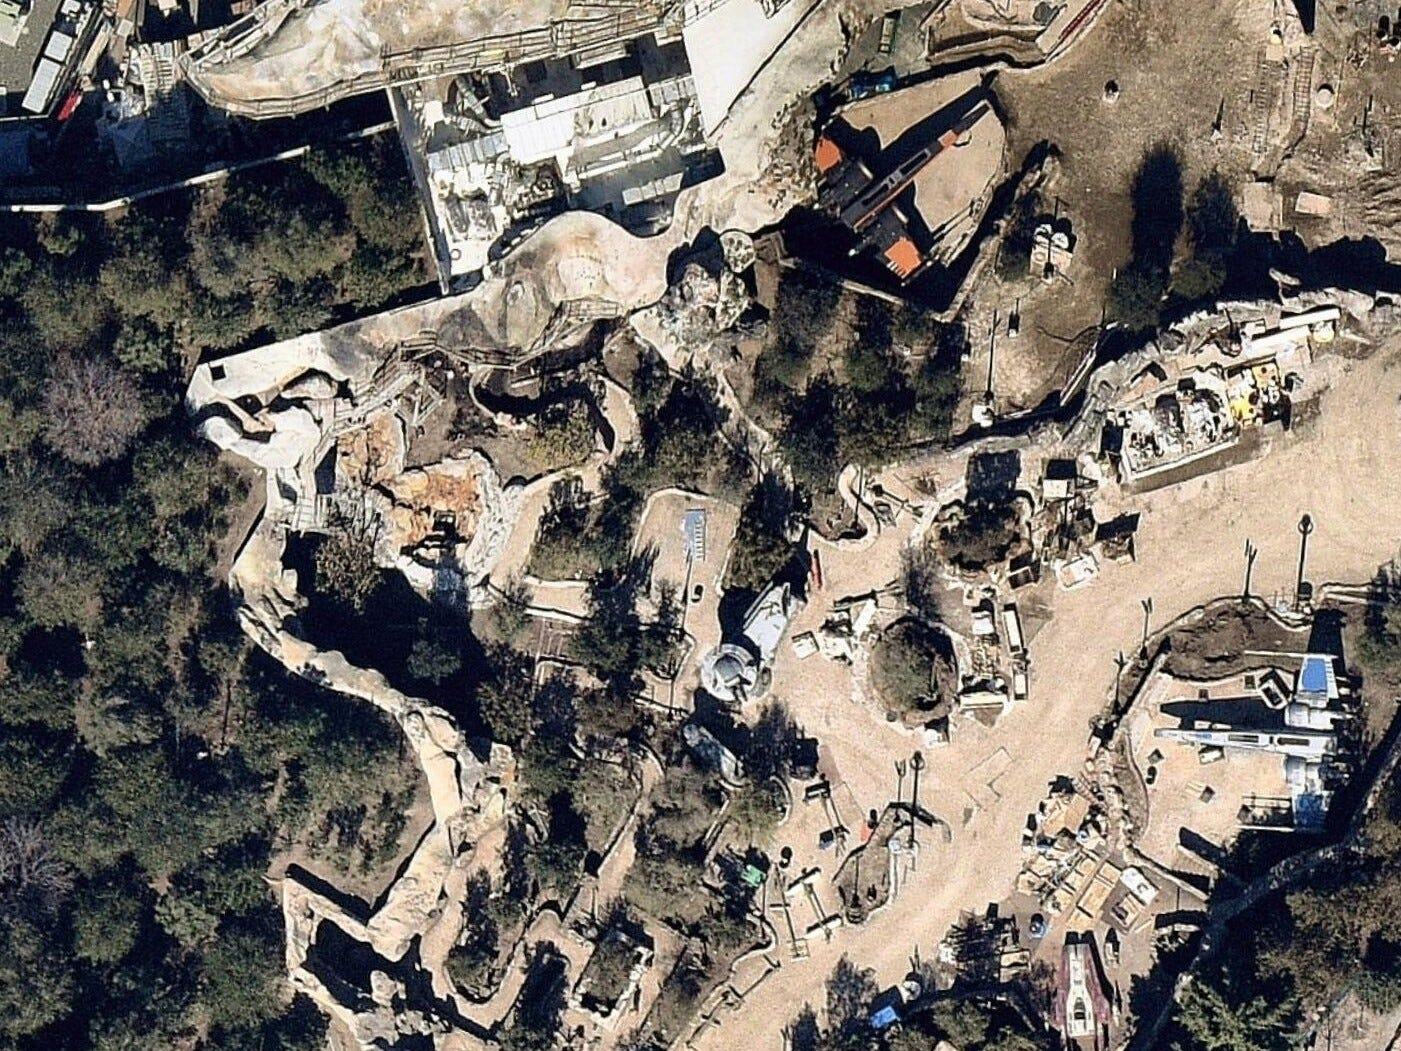 Note the sleek black X-Wing at the top, as well as the  blue-and-white X-Wing at the lower right parked near an A-Wing, iconic Star Wars fighters as seen in a February image of Star Wars: Galaxy's Edge at Disneyland. A laser turret can be seen near the center.  The queue to Star Wars: Rise of the Resistance will thread through the caves and paths here. The land opens May 31, though Rise of the Resistance won't be ready until later this year.